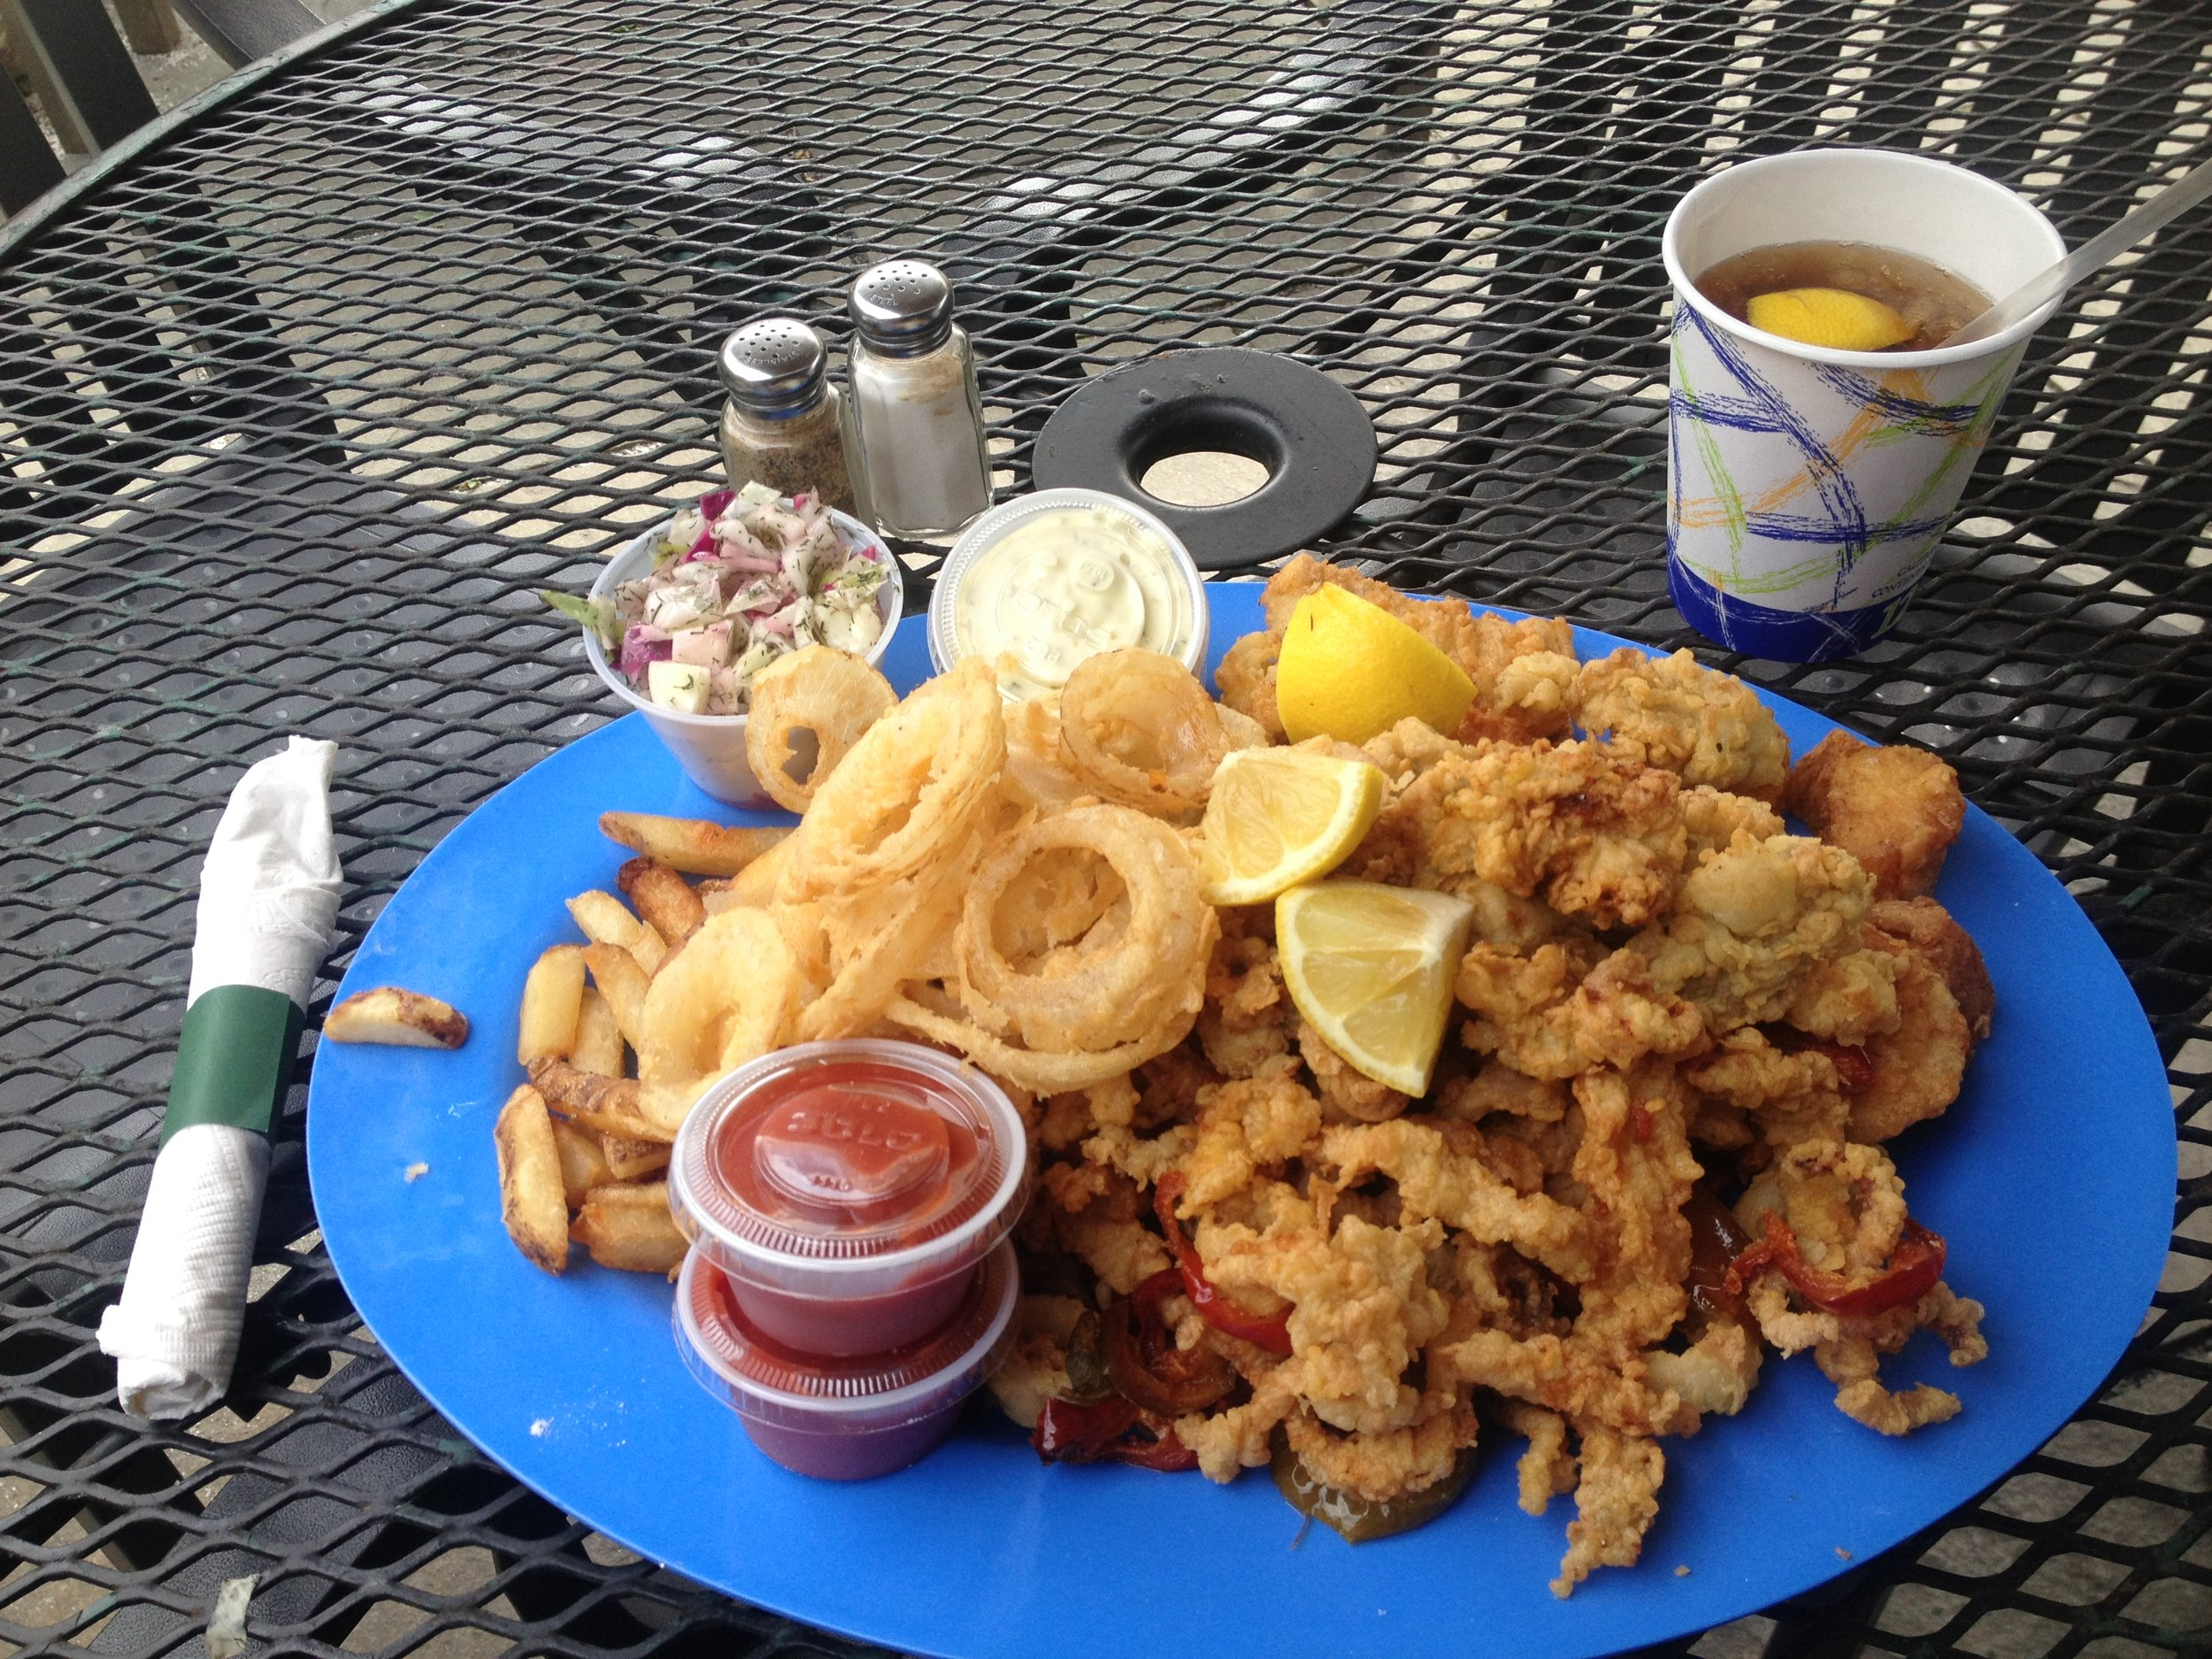 FRIED PLATTERS - All platters are hand battered and fried to order. Served with our sea salted fries and signature cabbage salad.